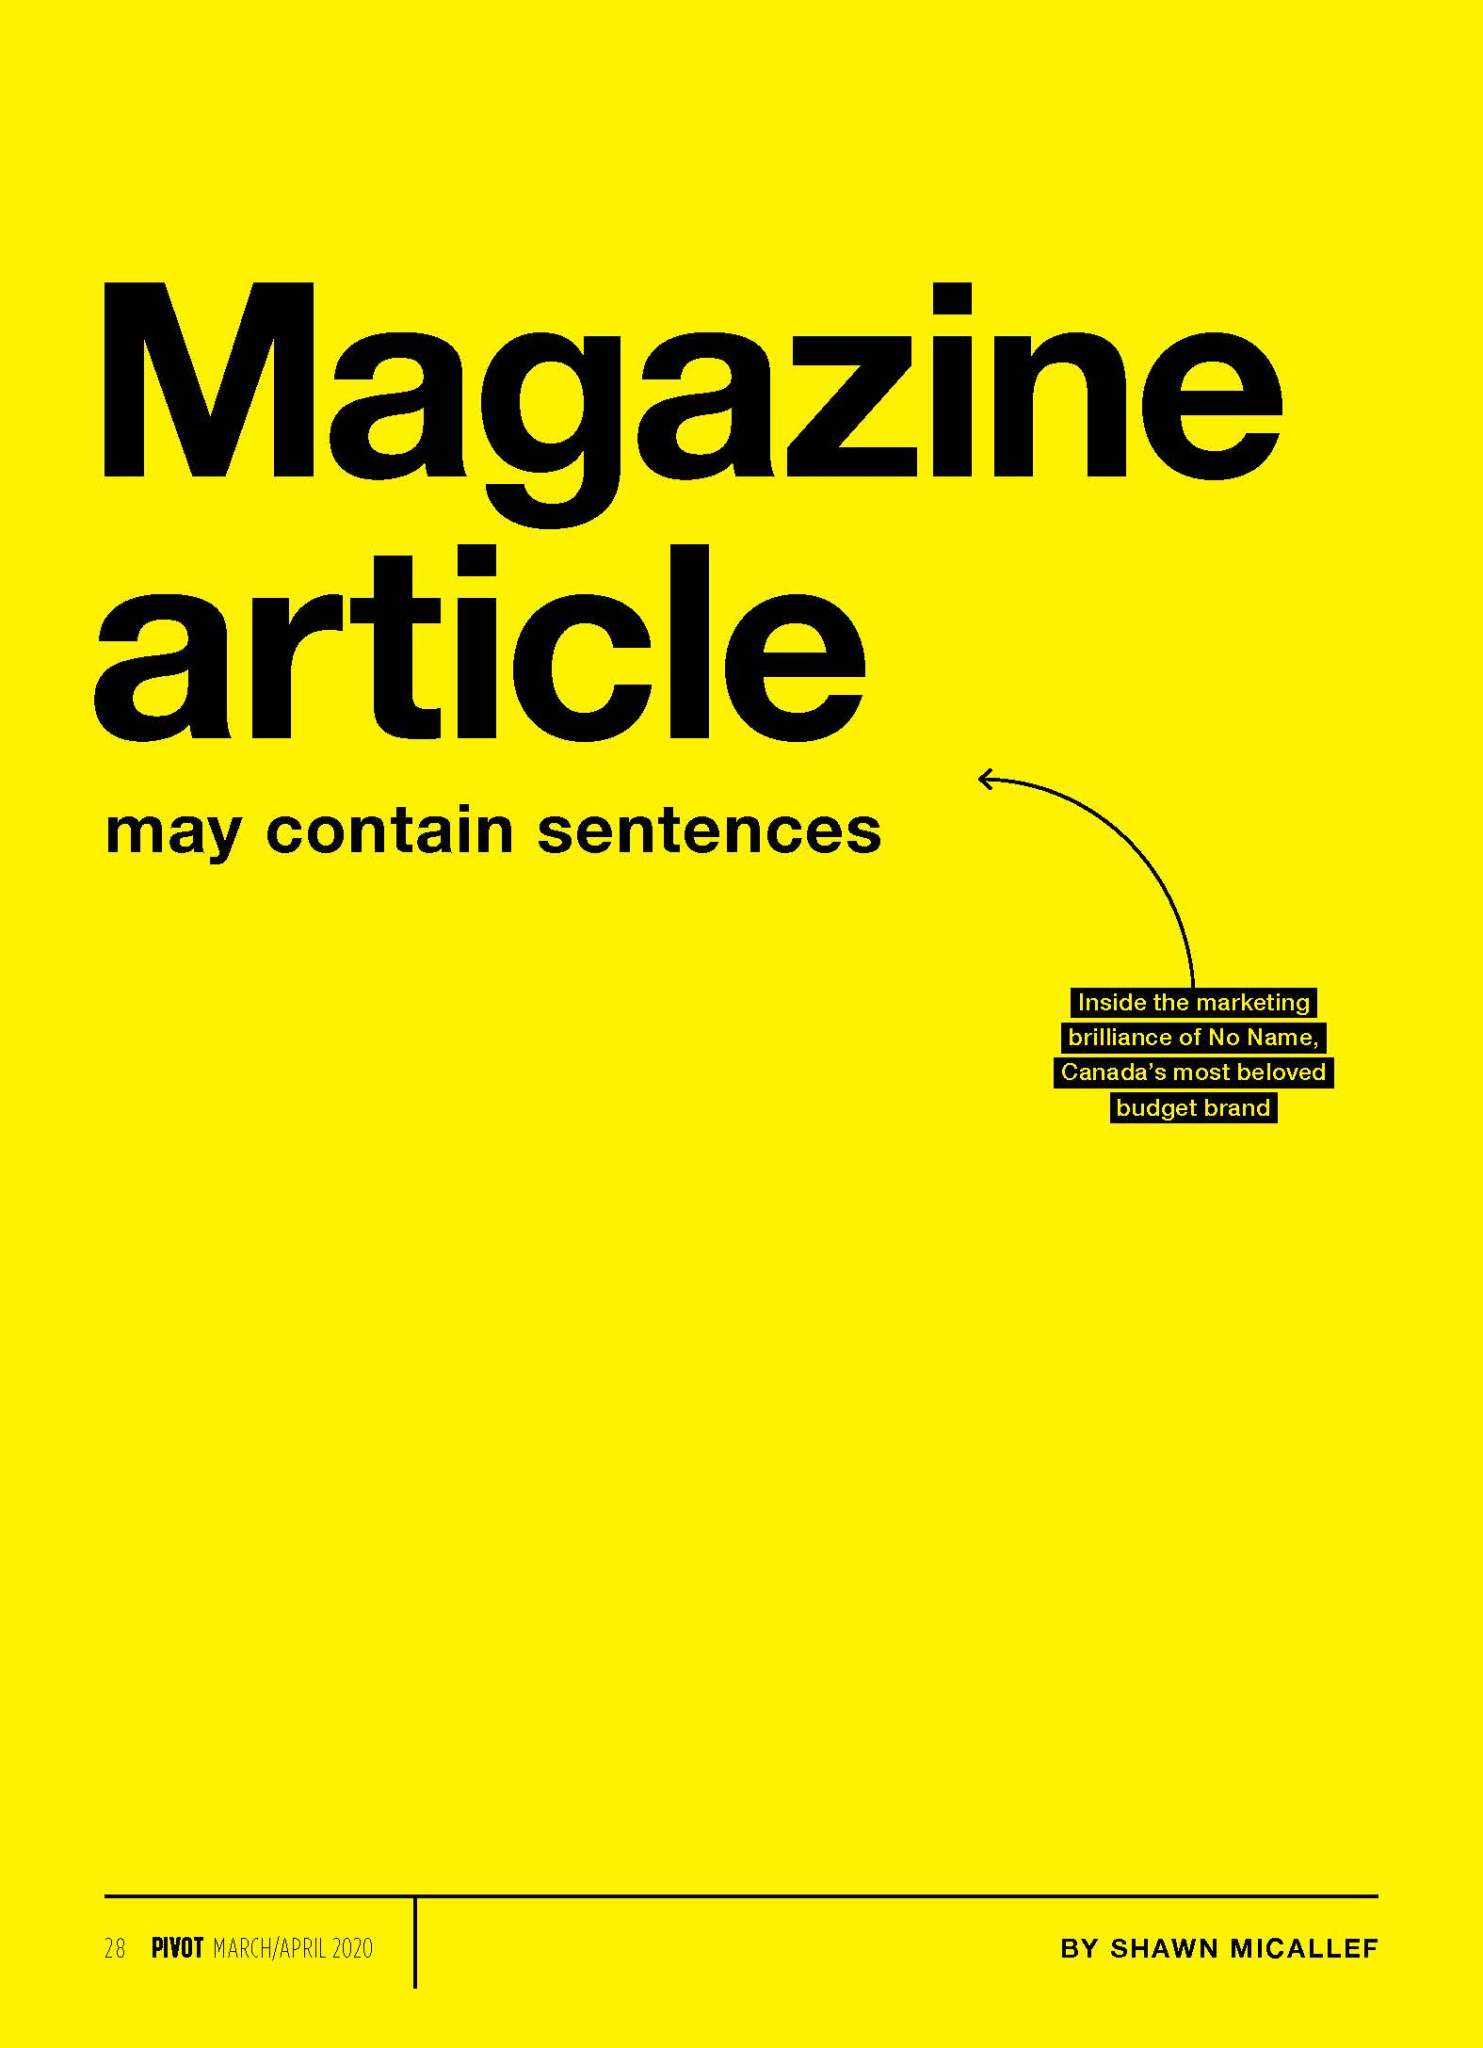 Magazine article may contain sentences